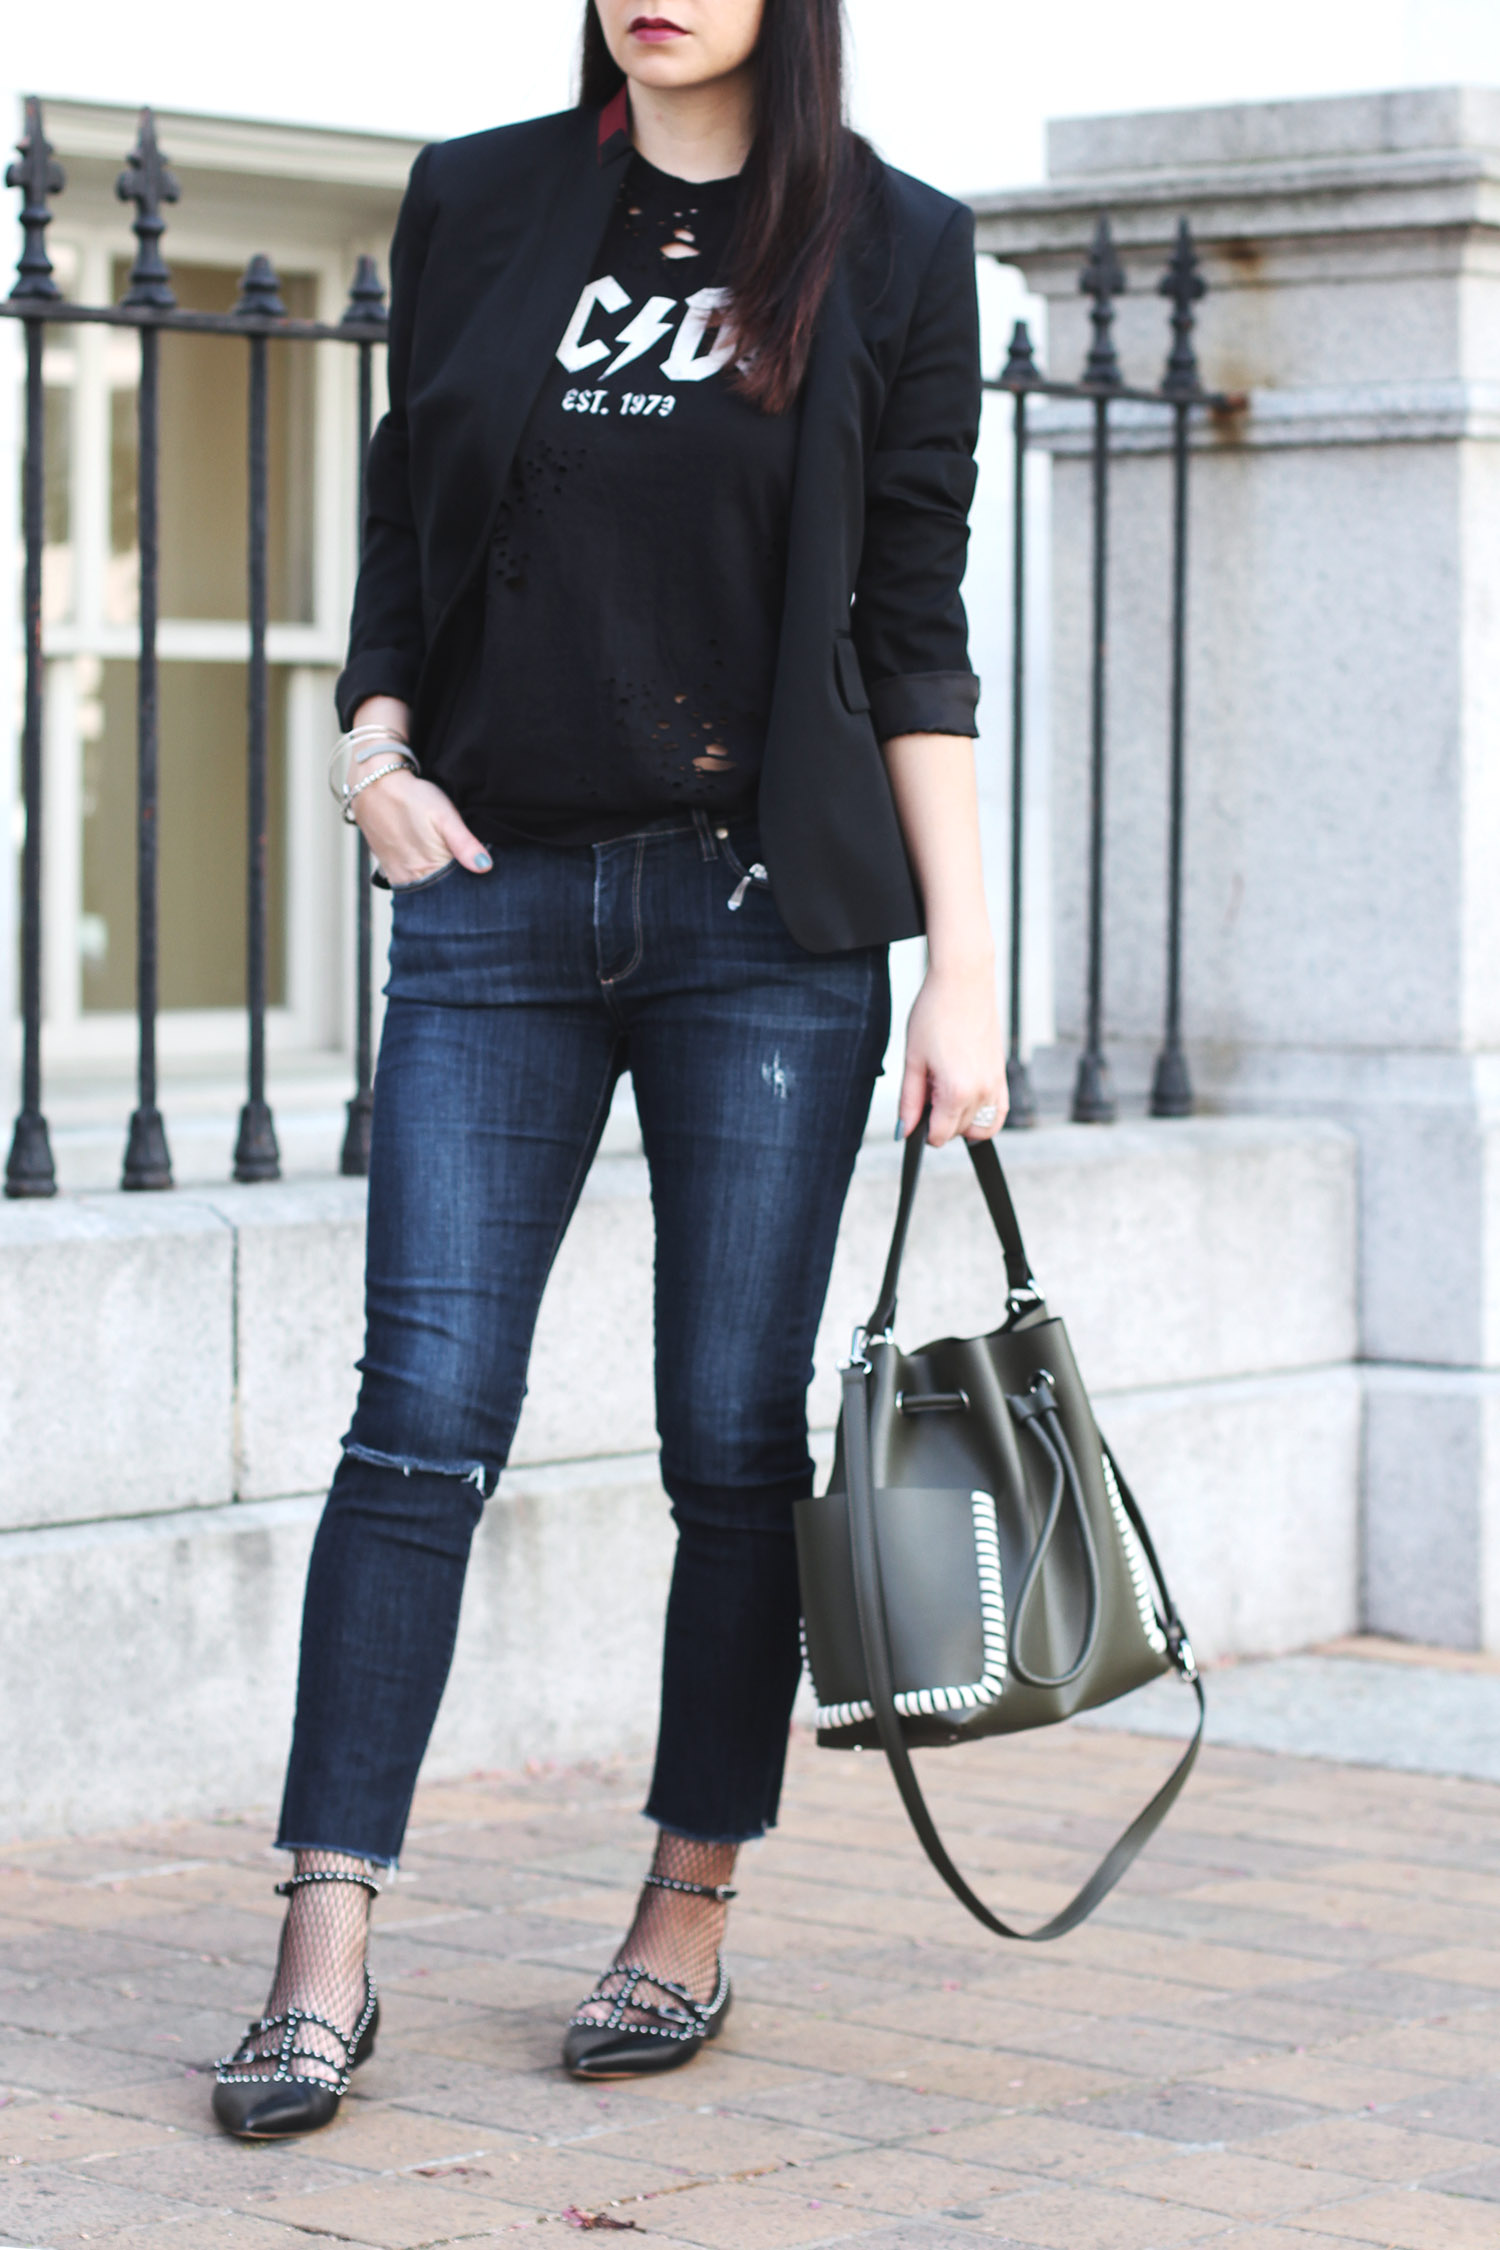 Graphic T-Shirt Look, Givenchy Flats, Rag and Bone Blazer